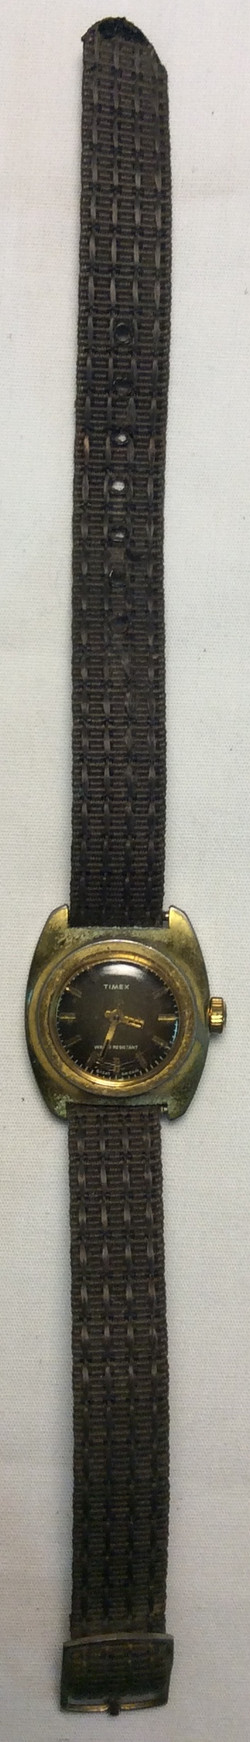 Timex watch - round aged gold face